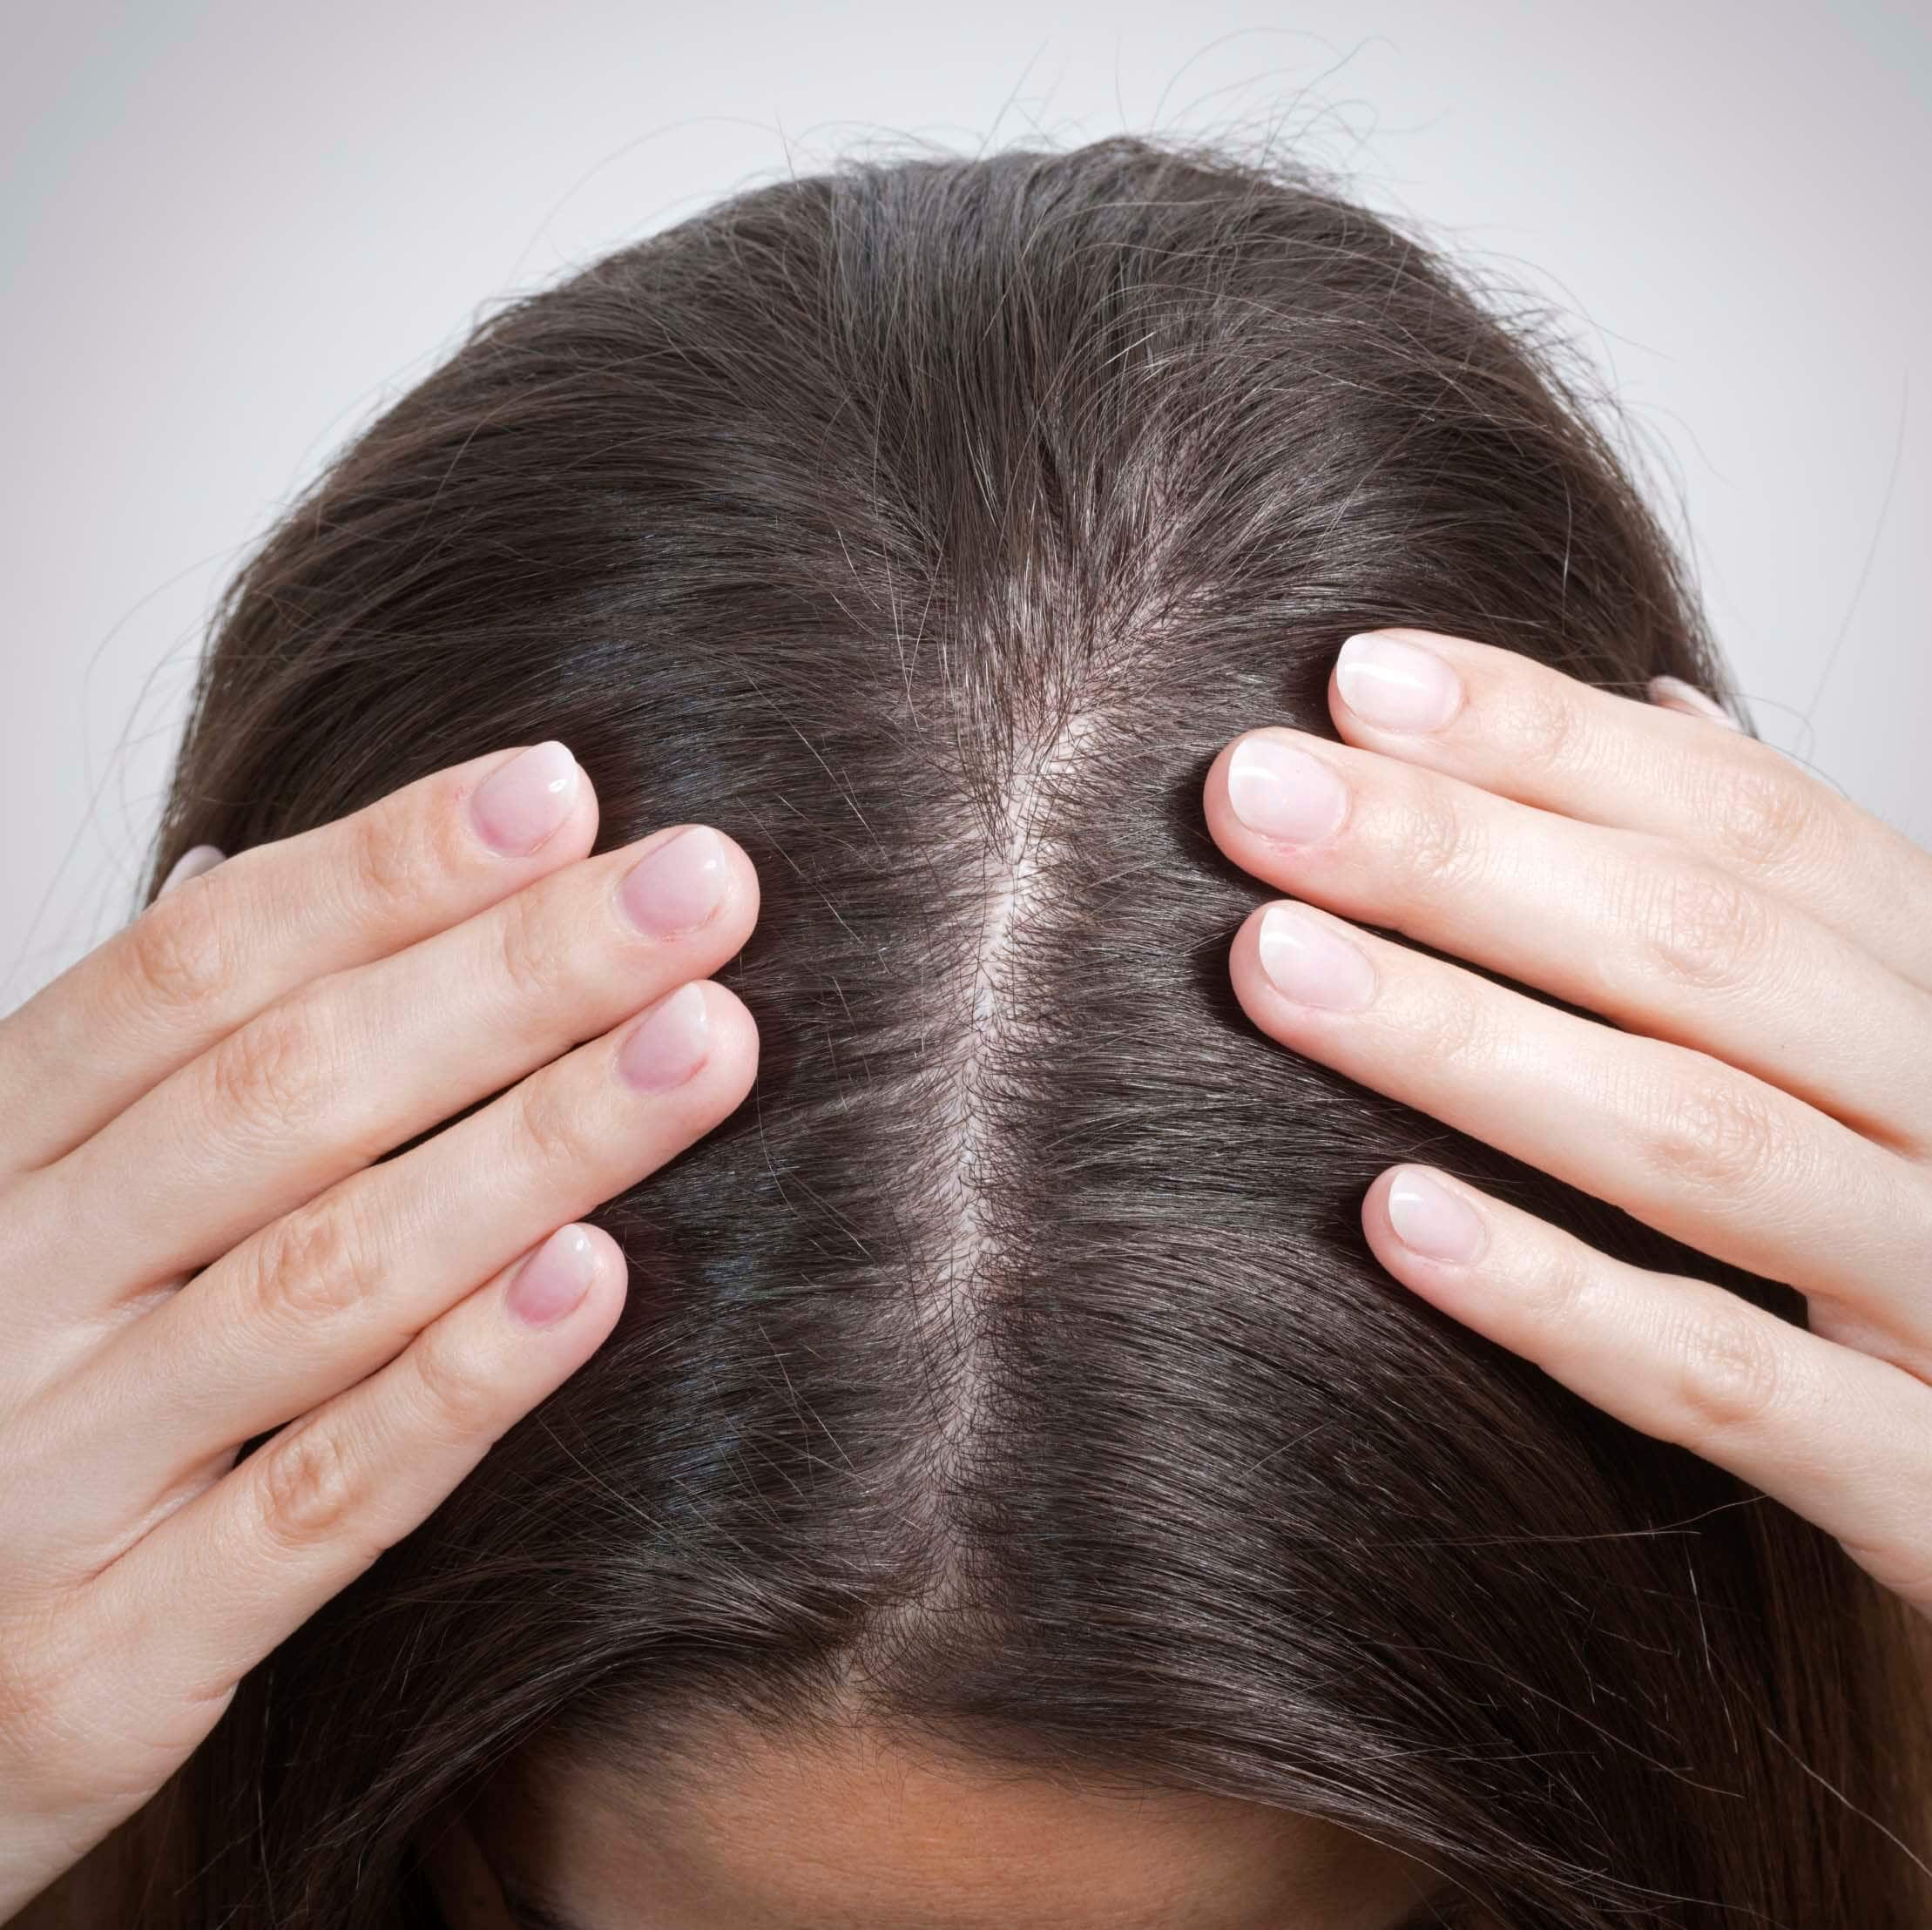 Types of hair loss: Close up of the top of a woman's head, parting her hair to show her scalp